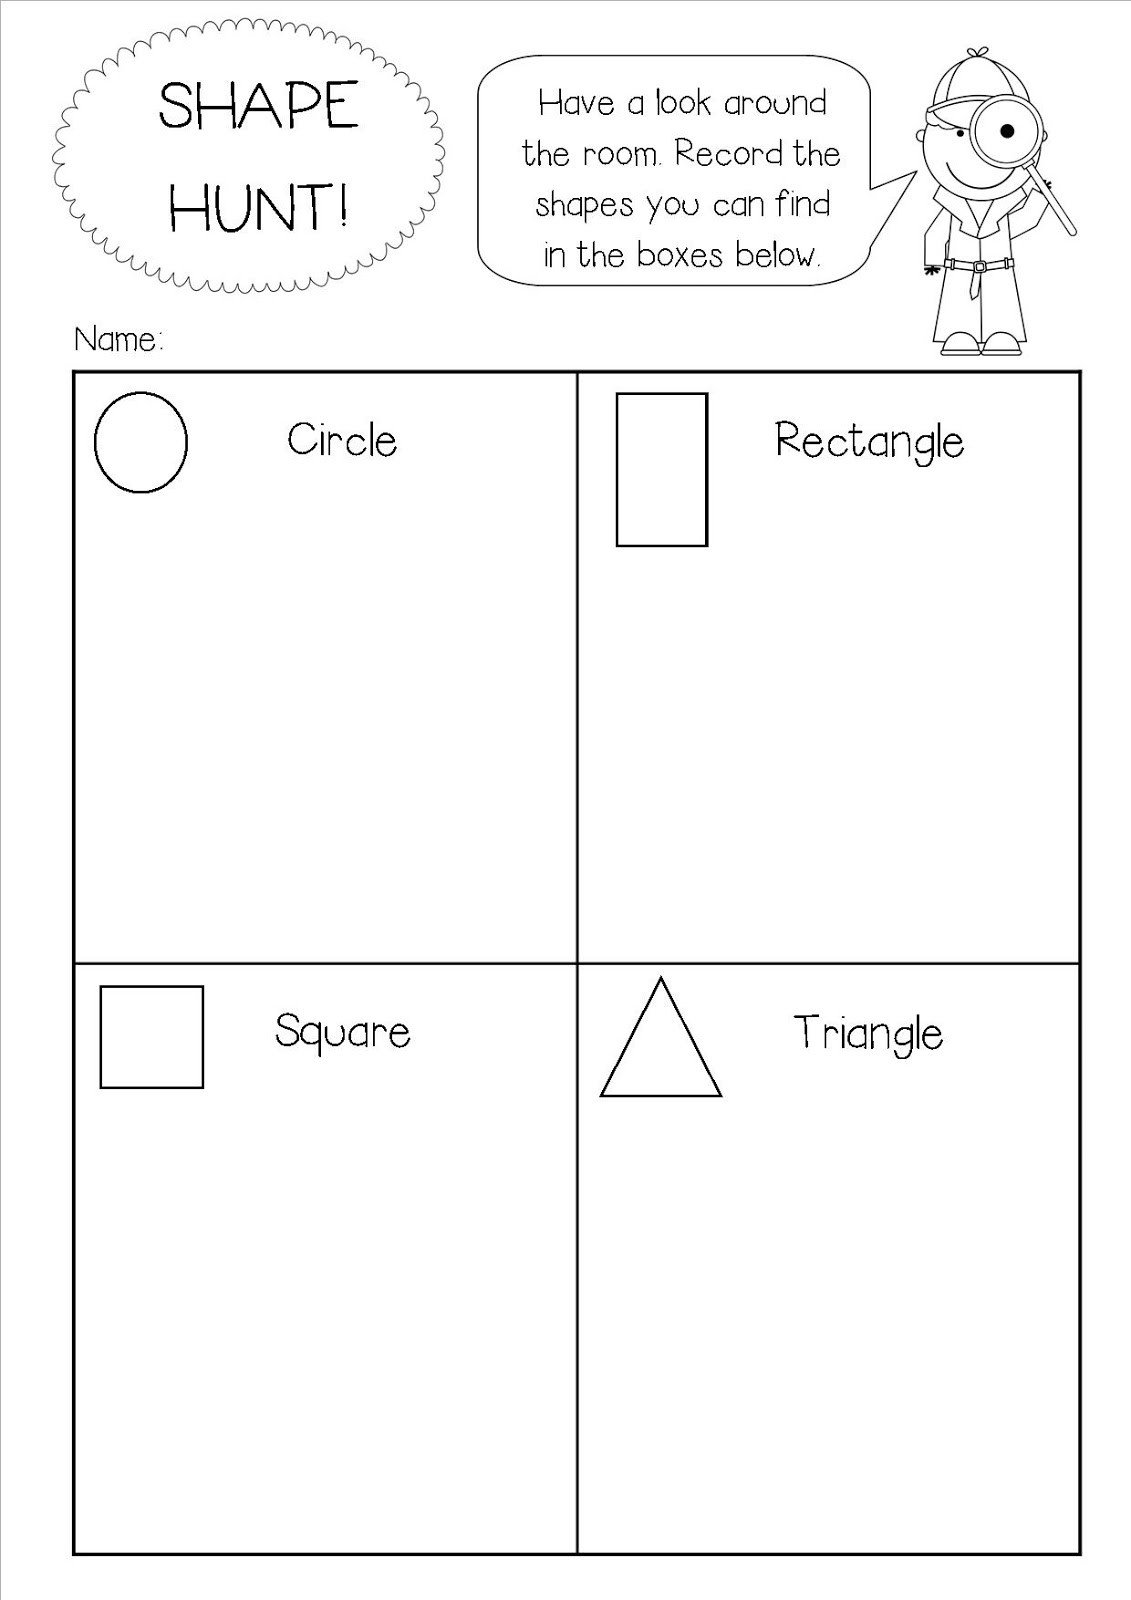 Categorizing Worksheets for Kindergarten Shape Hunt Worksheet